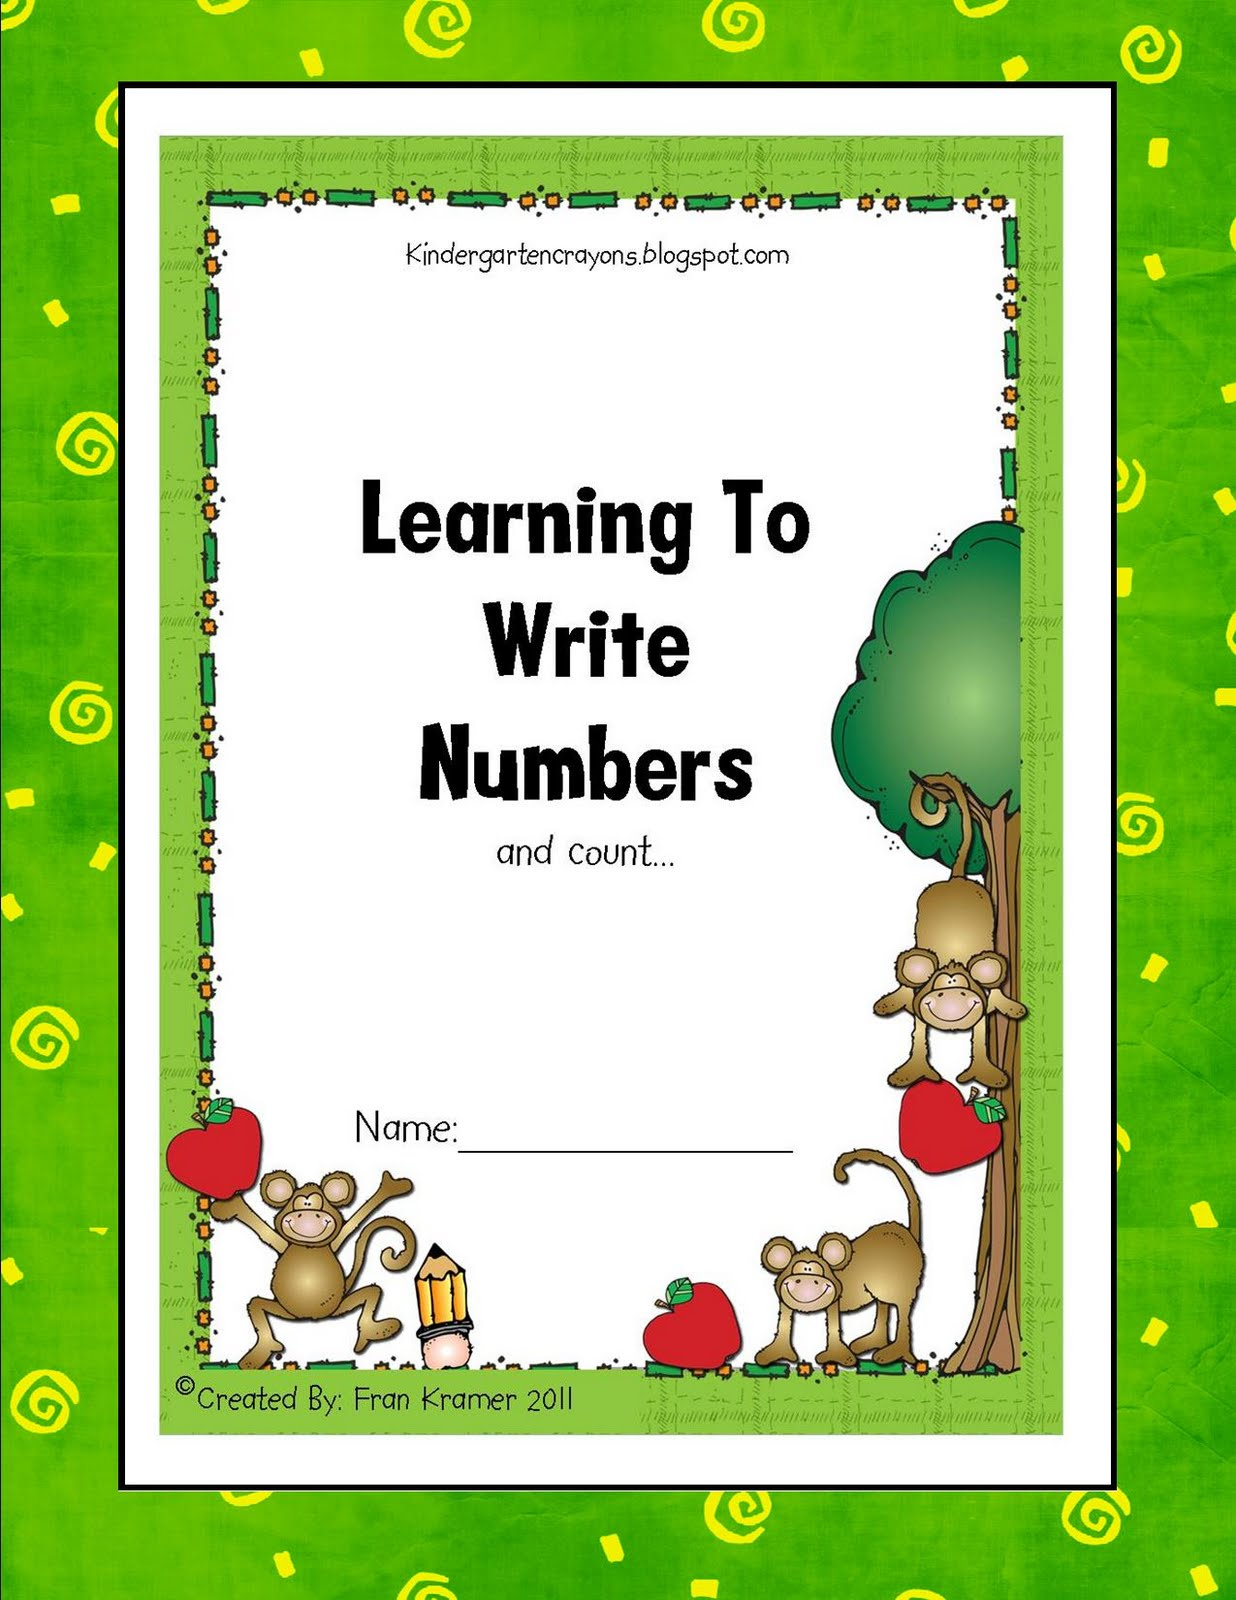 Kindergarten Crayons Chapter 4 Now Let S Explore